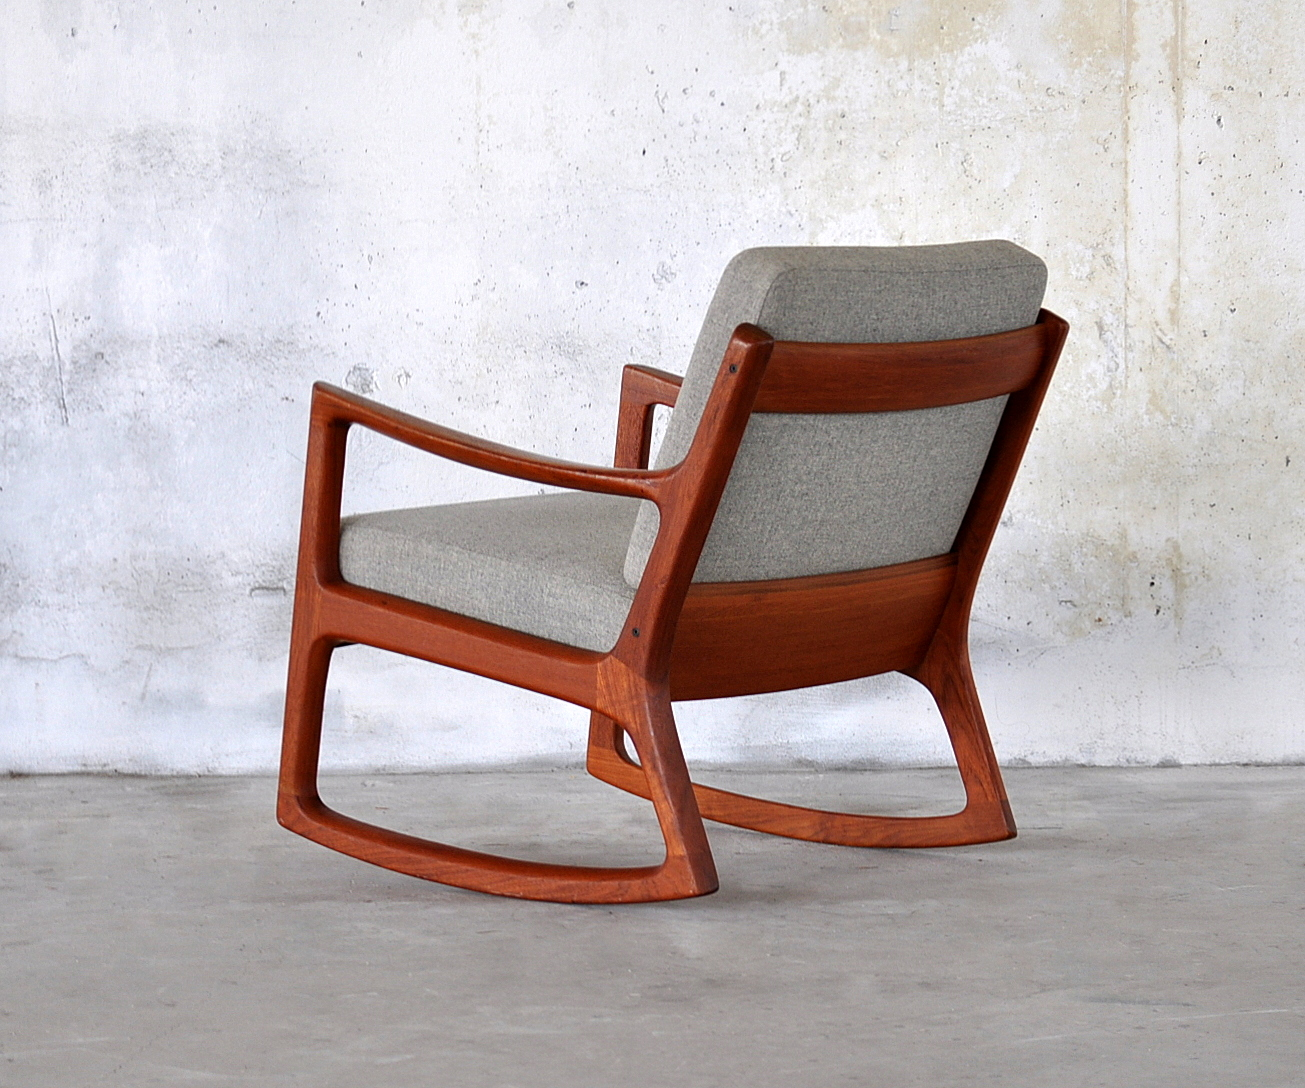 select modern ole wanscher teak rocking chair. Black Bedroom Furniture Sets. Home Design Ideas